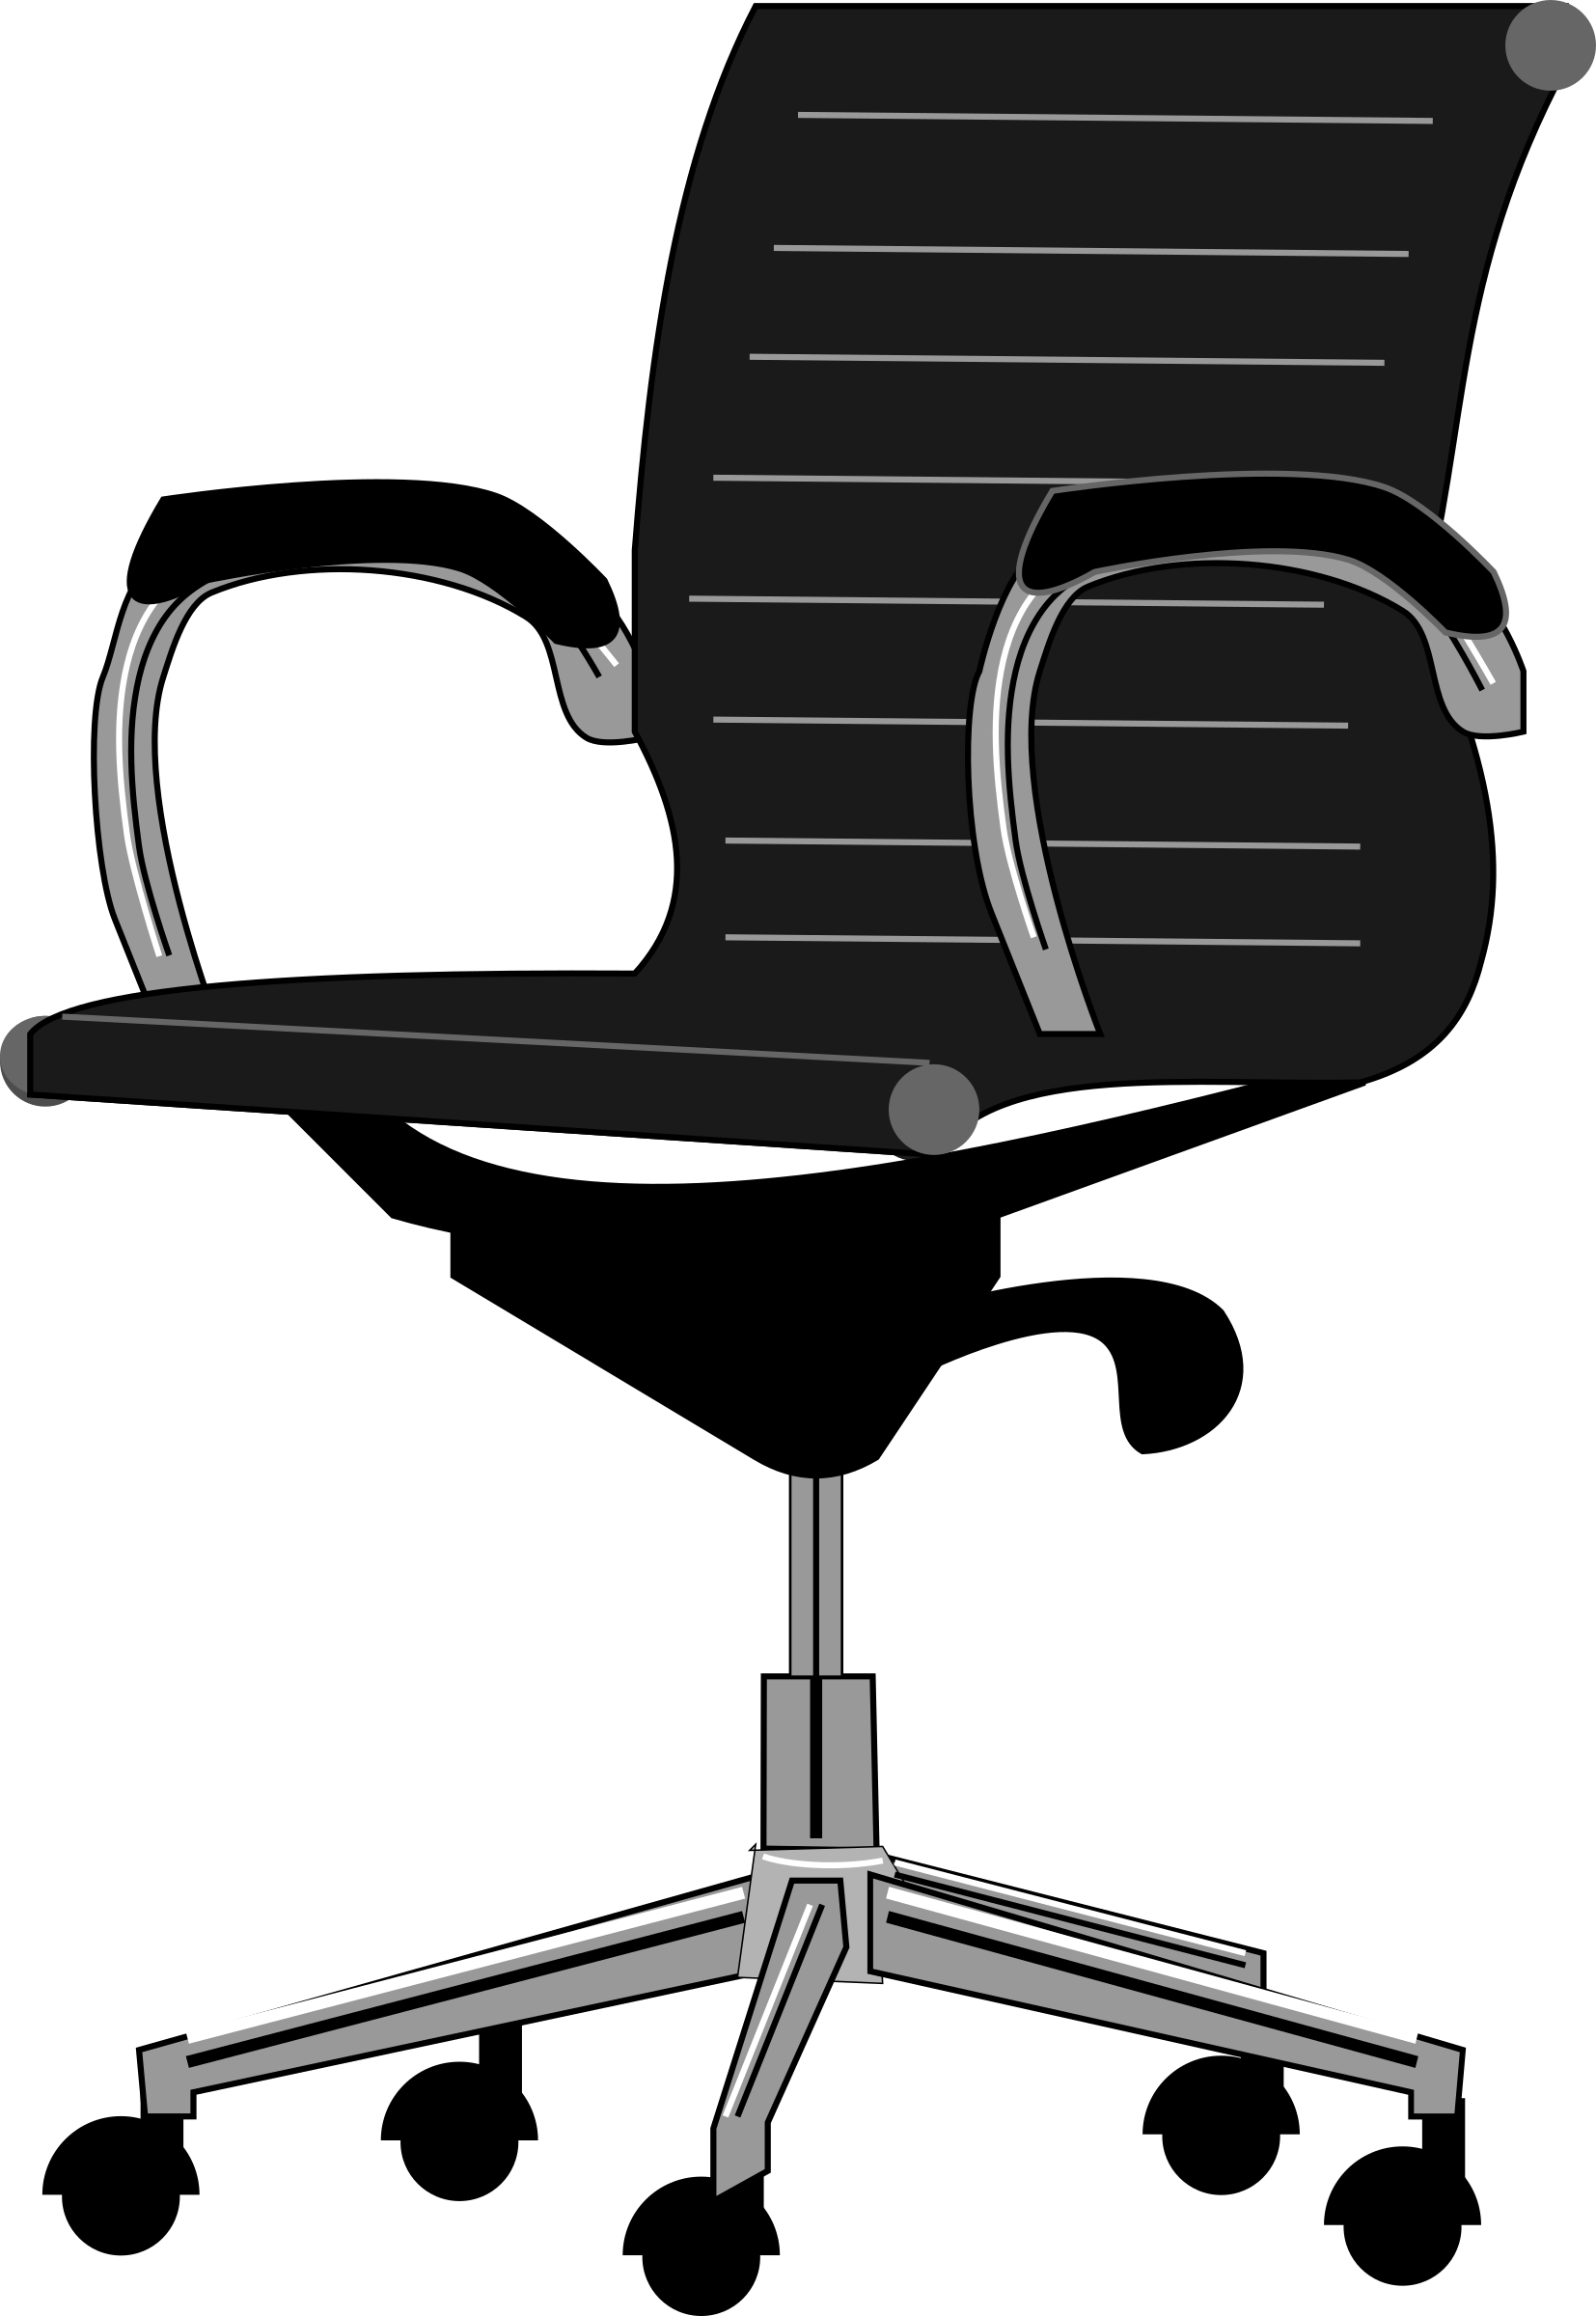 Office clipart office chair Clipart Chair Office Office Chair